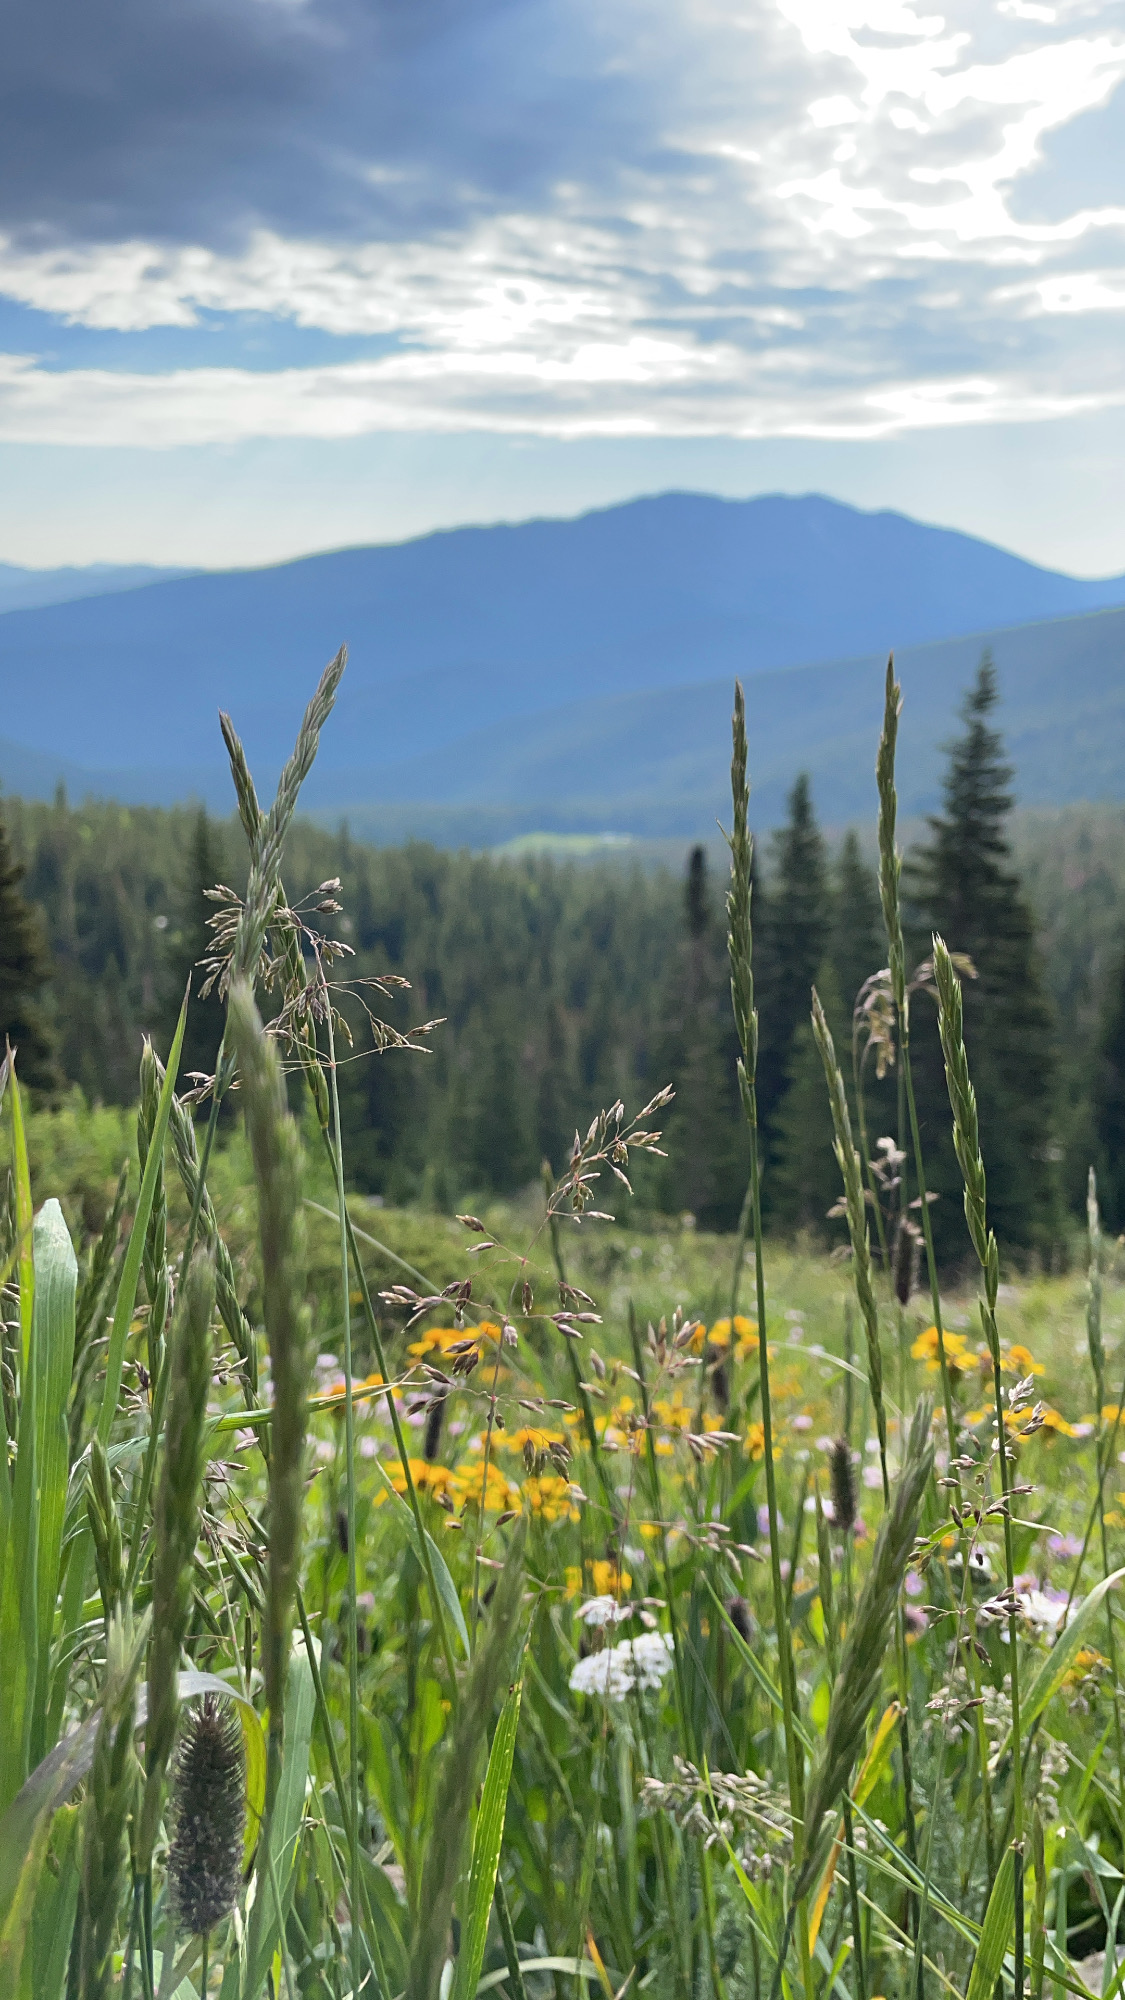 a photo of wildflowers with unfocused mountains in the distant background